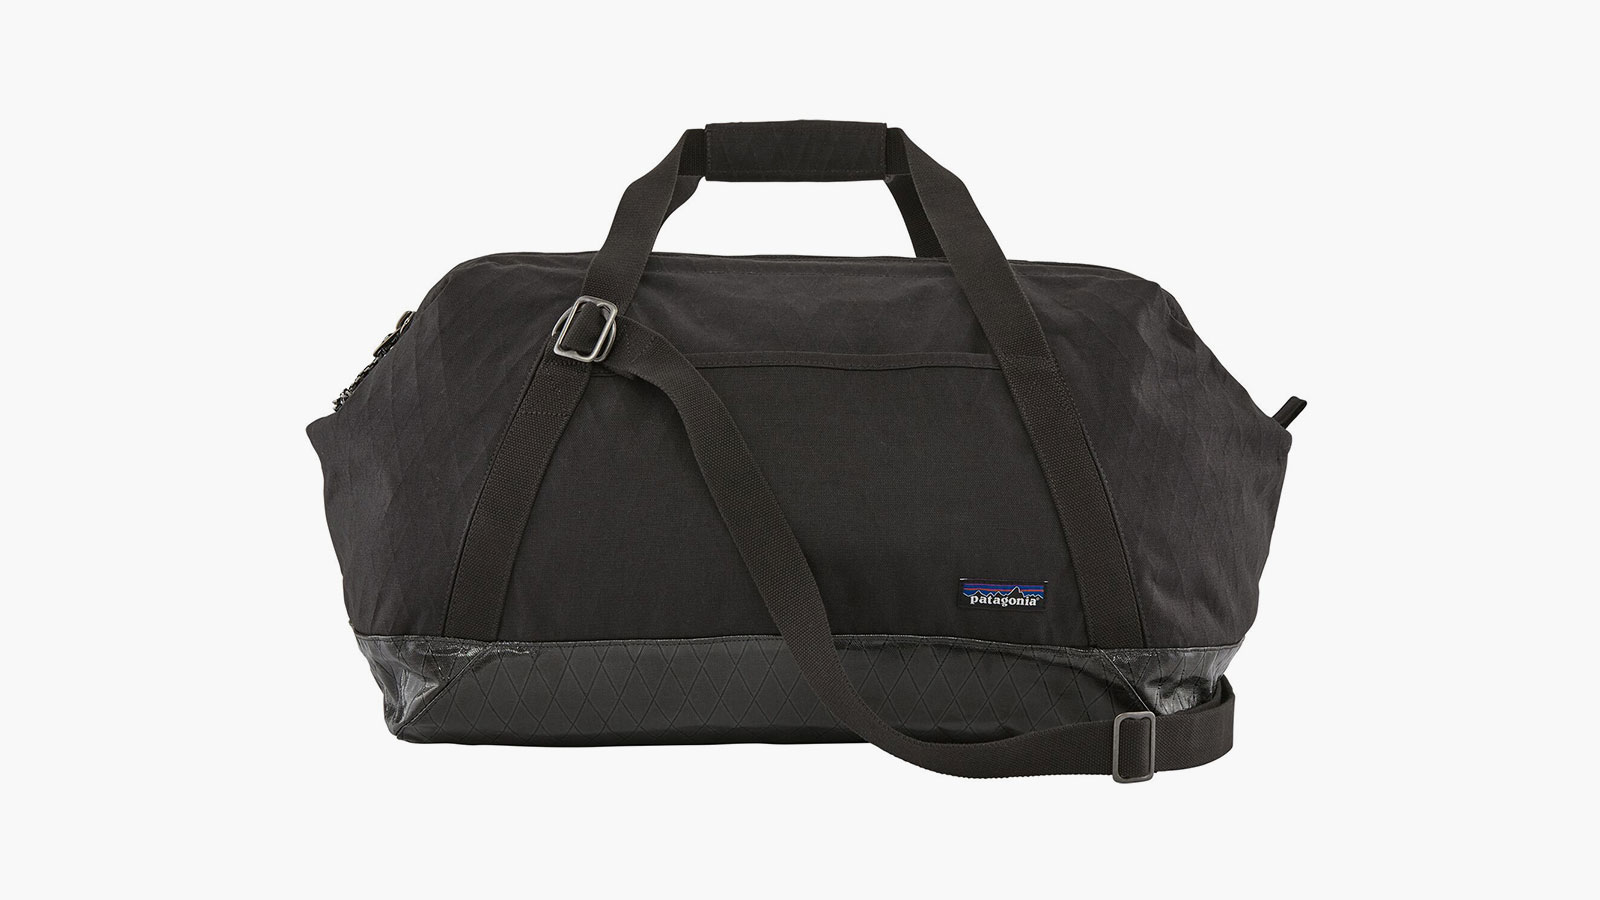 Patagonia Stand Up Bag Collection